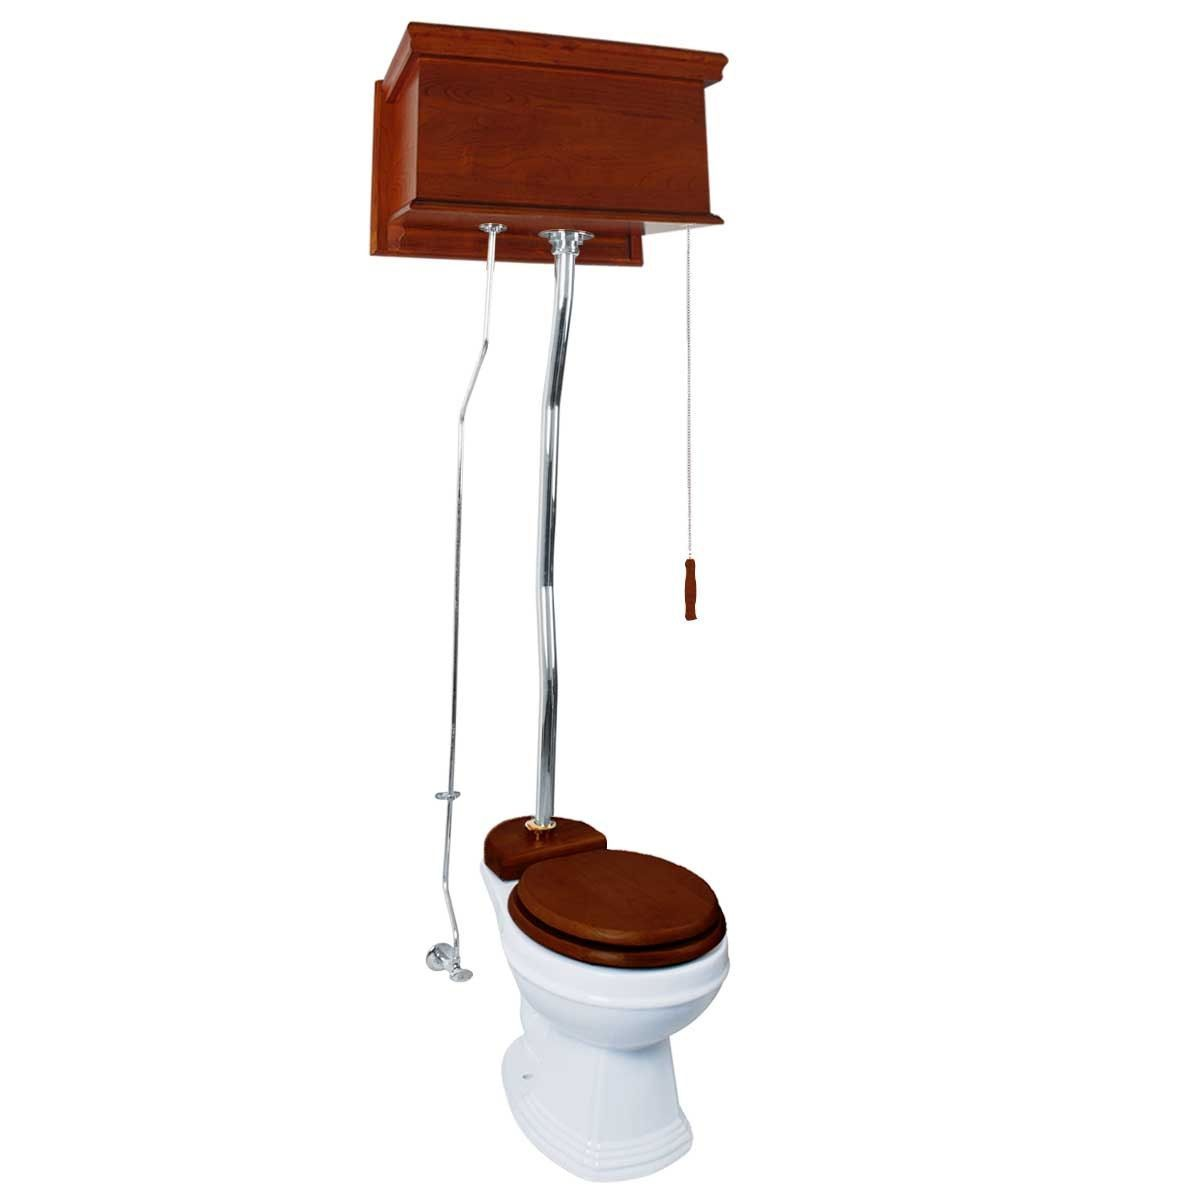 Mahogany Flat High Tank Pull Chain Water Closet With White Toilet